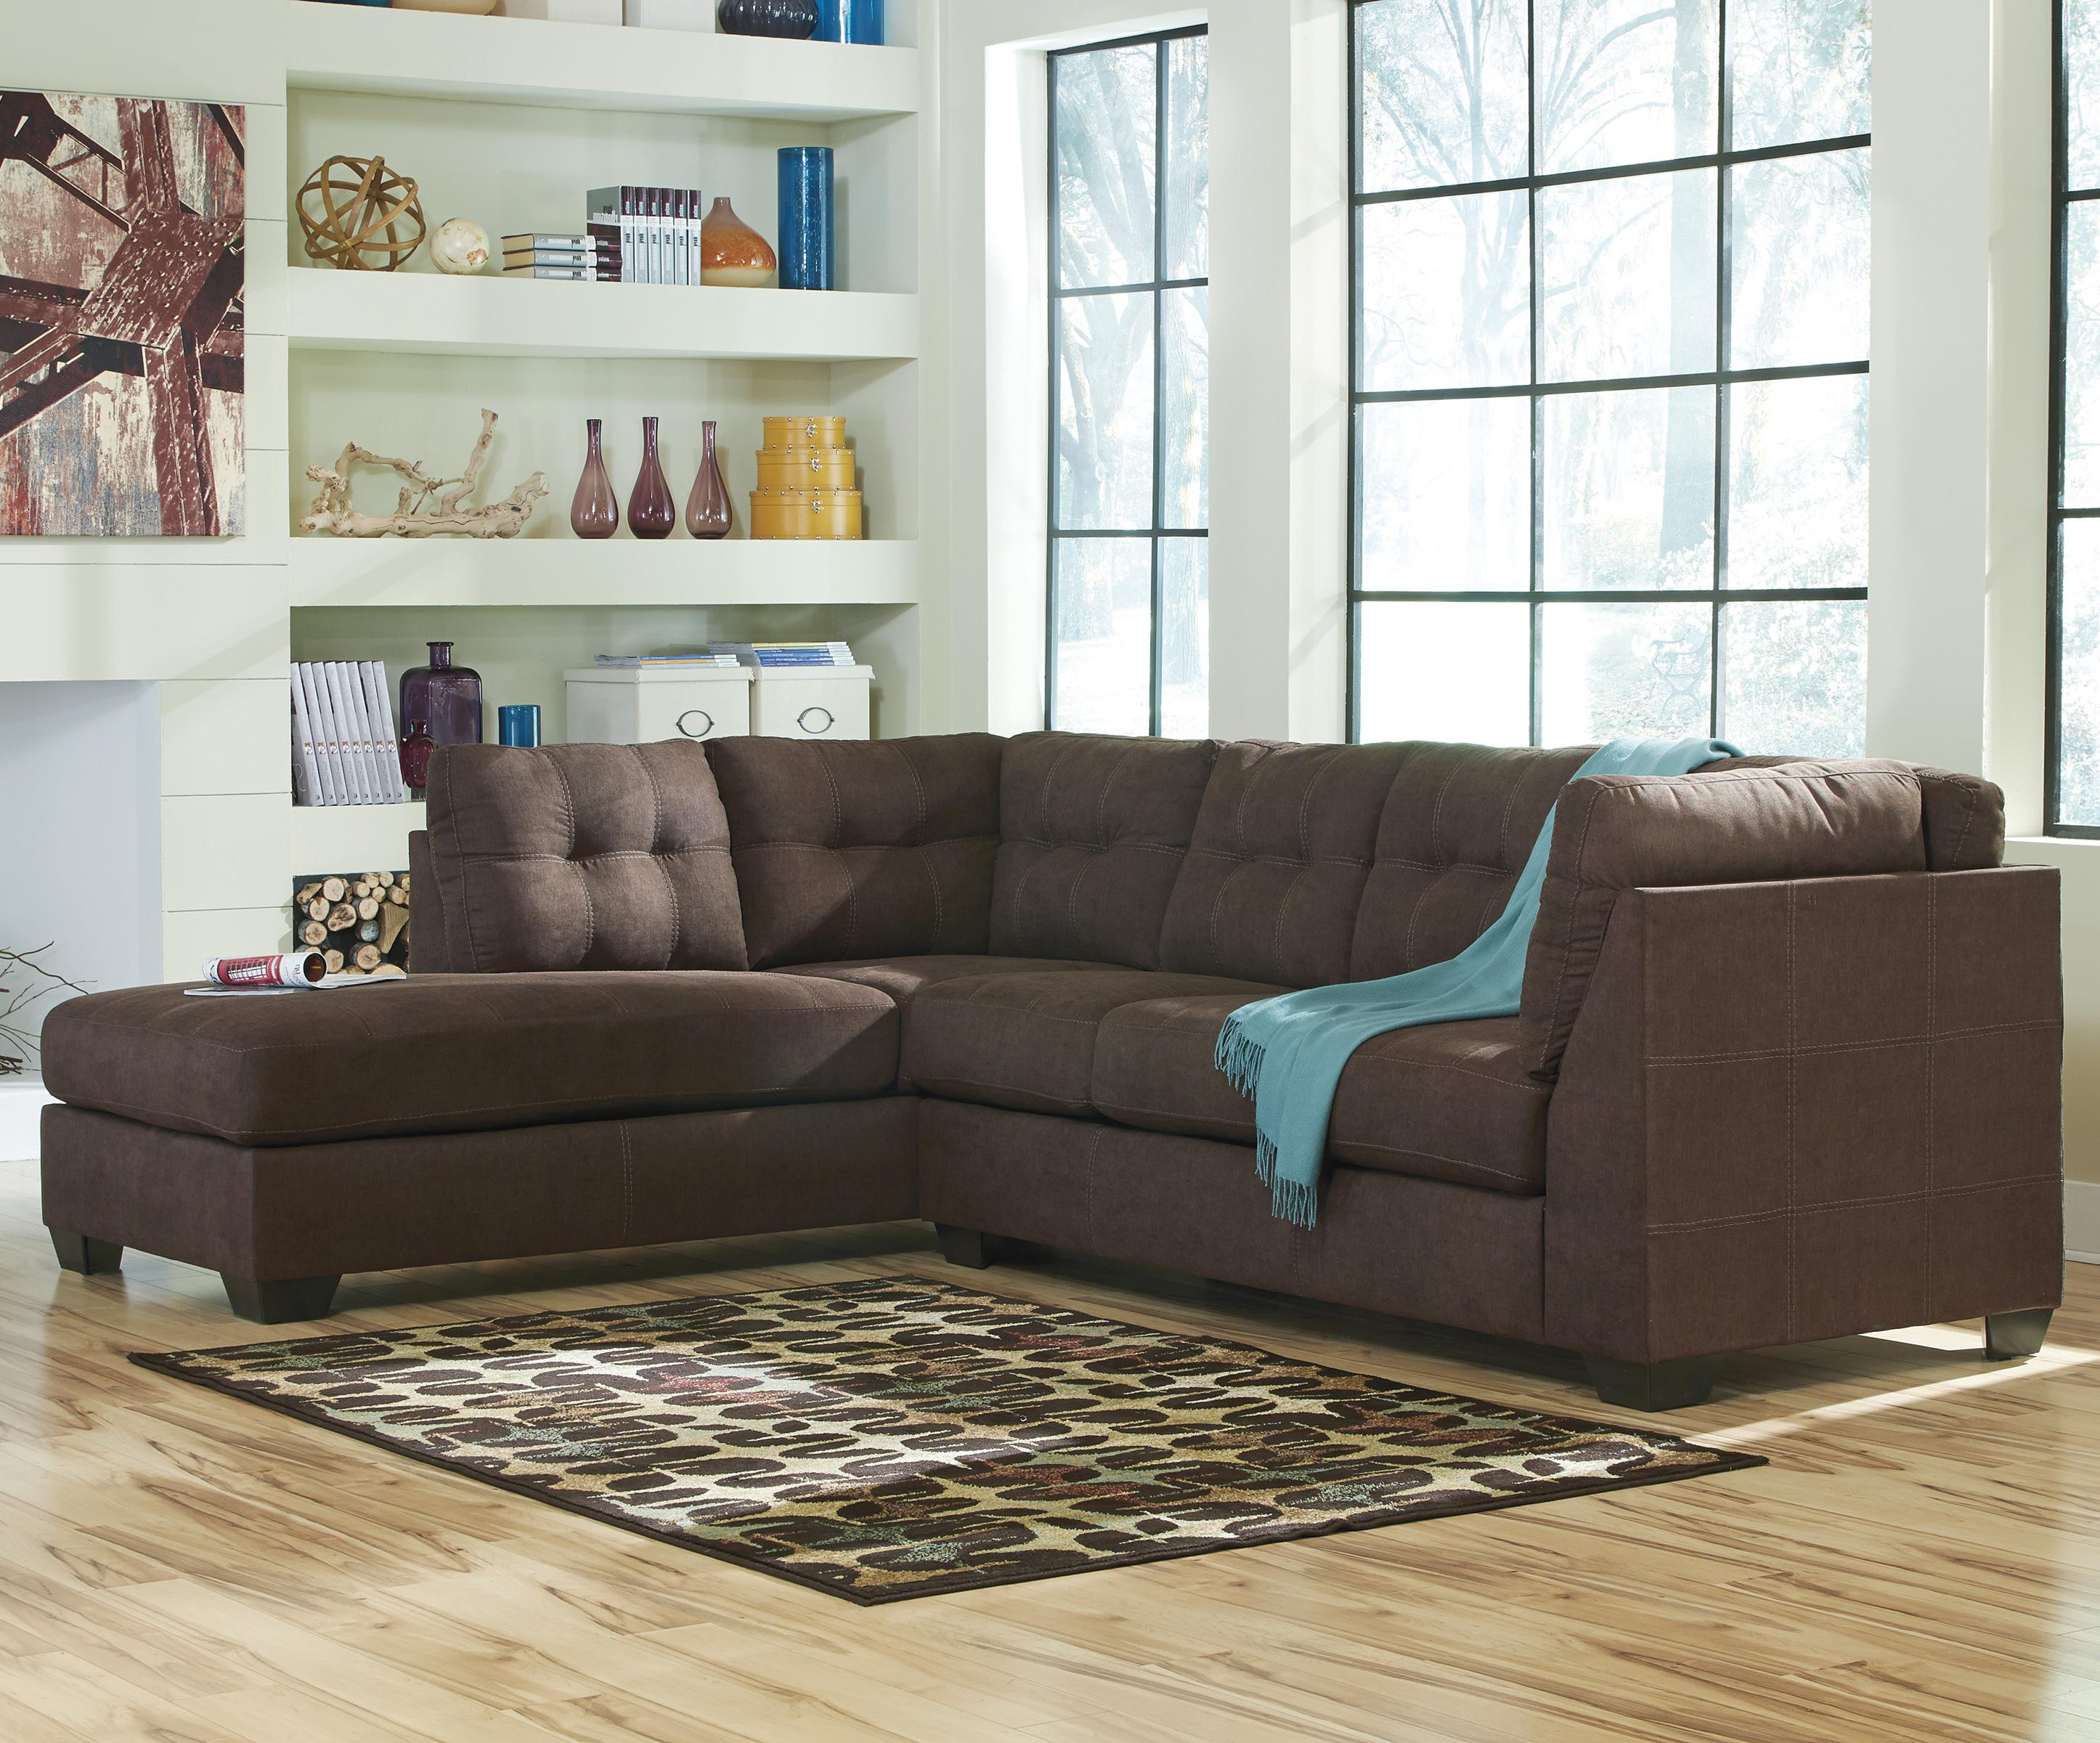 Maier - Walnut 2-Piece Sectional w/ Sleeper & Chaise by Benchcraft at Northeast Factory Direct